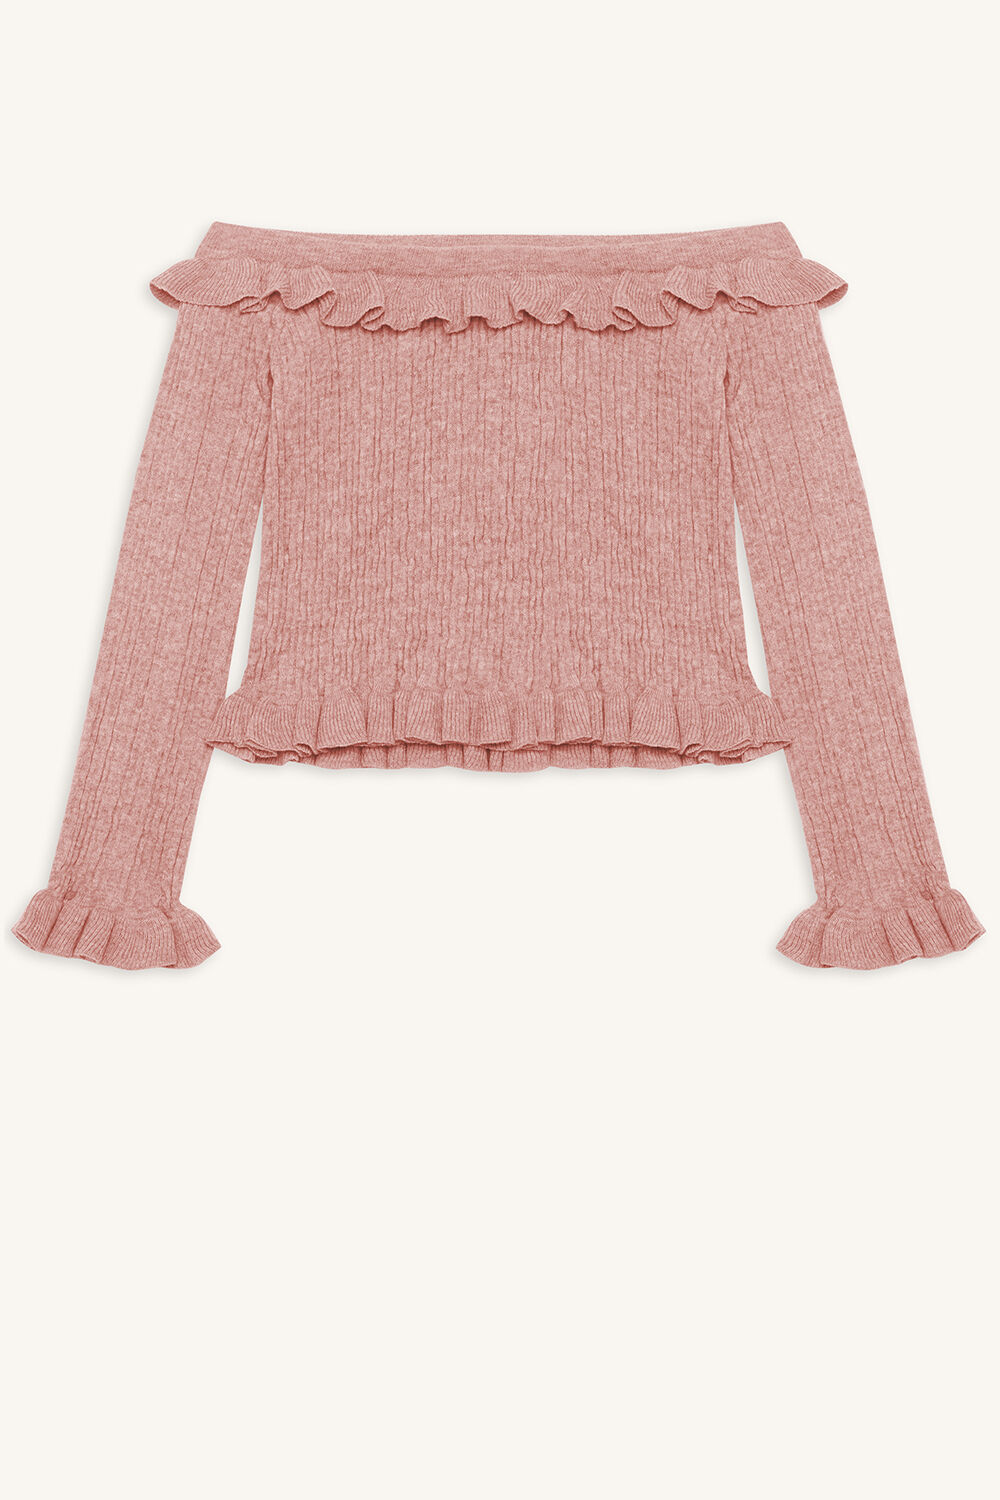 KIM OFF SHOULDER KNIT TOP in colour PEACHSKIN